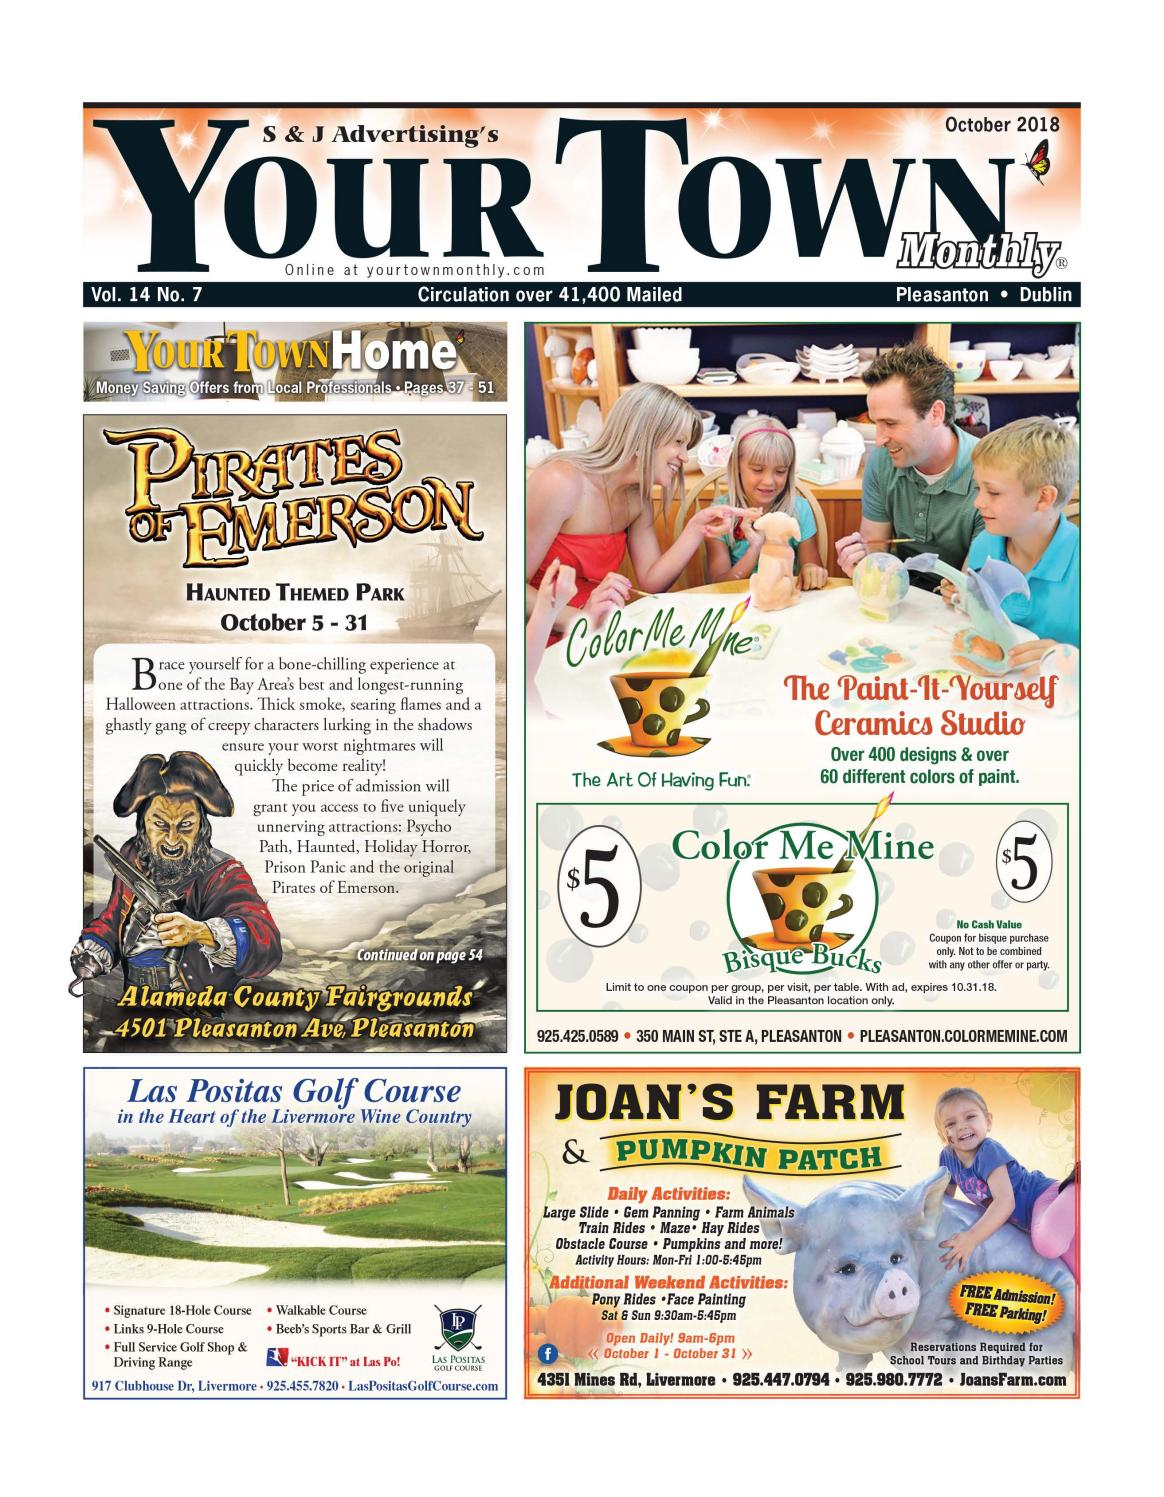 Your Town Monthly: Pleasanton/Dublin September 2018 by Your